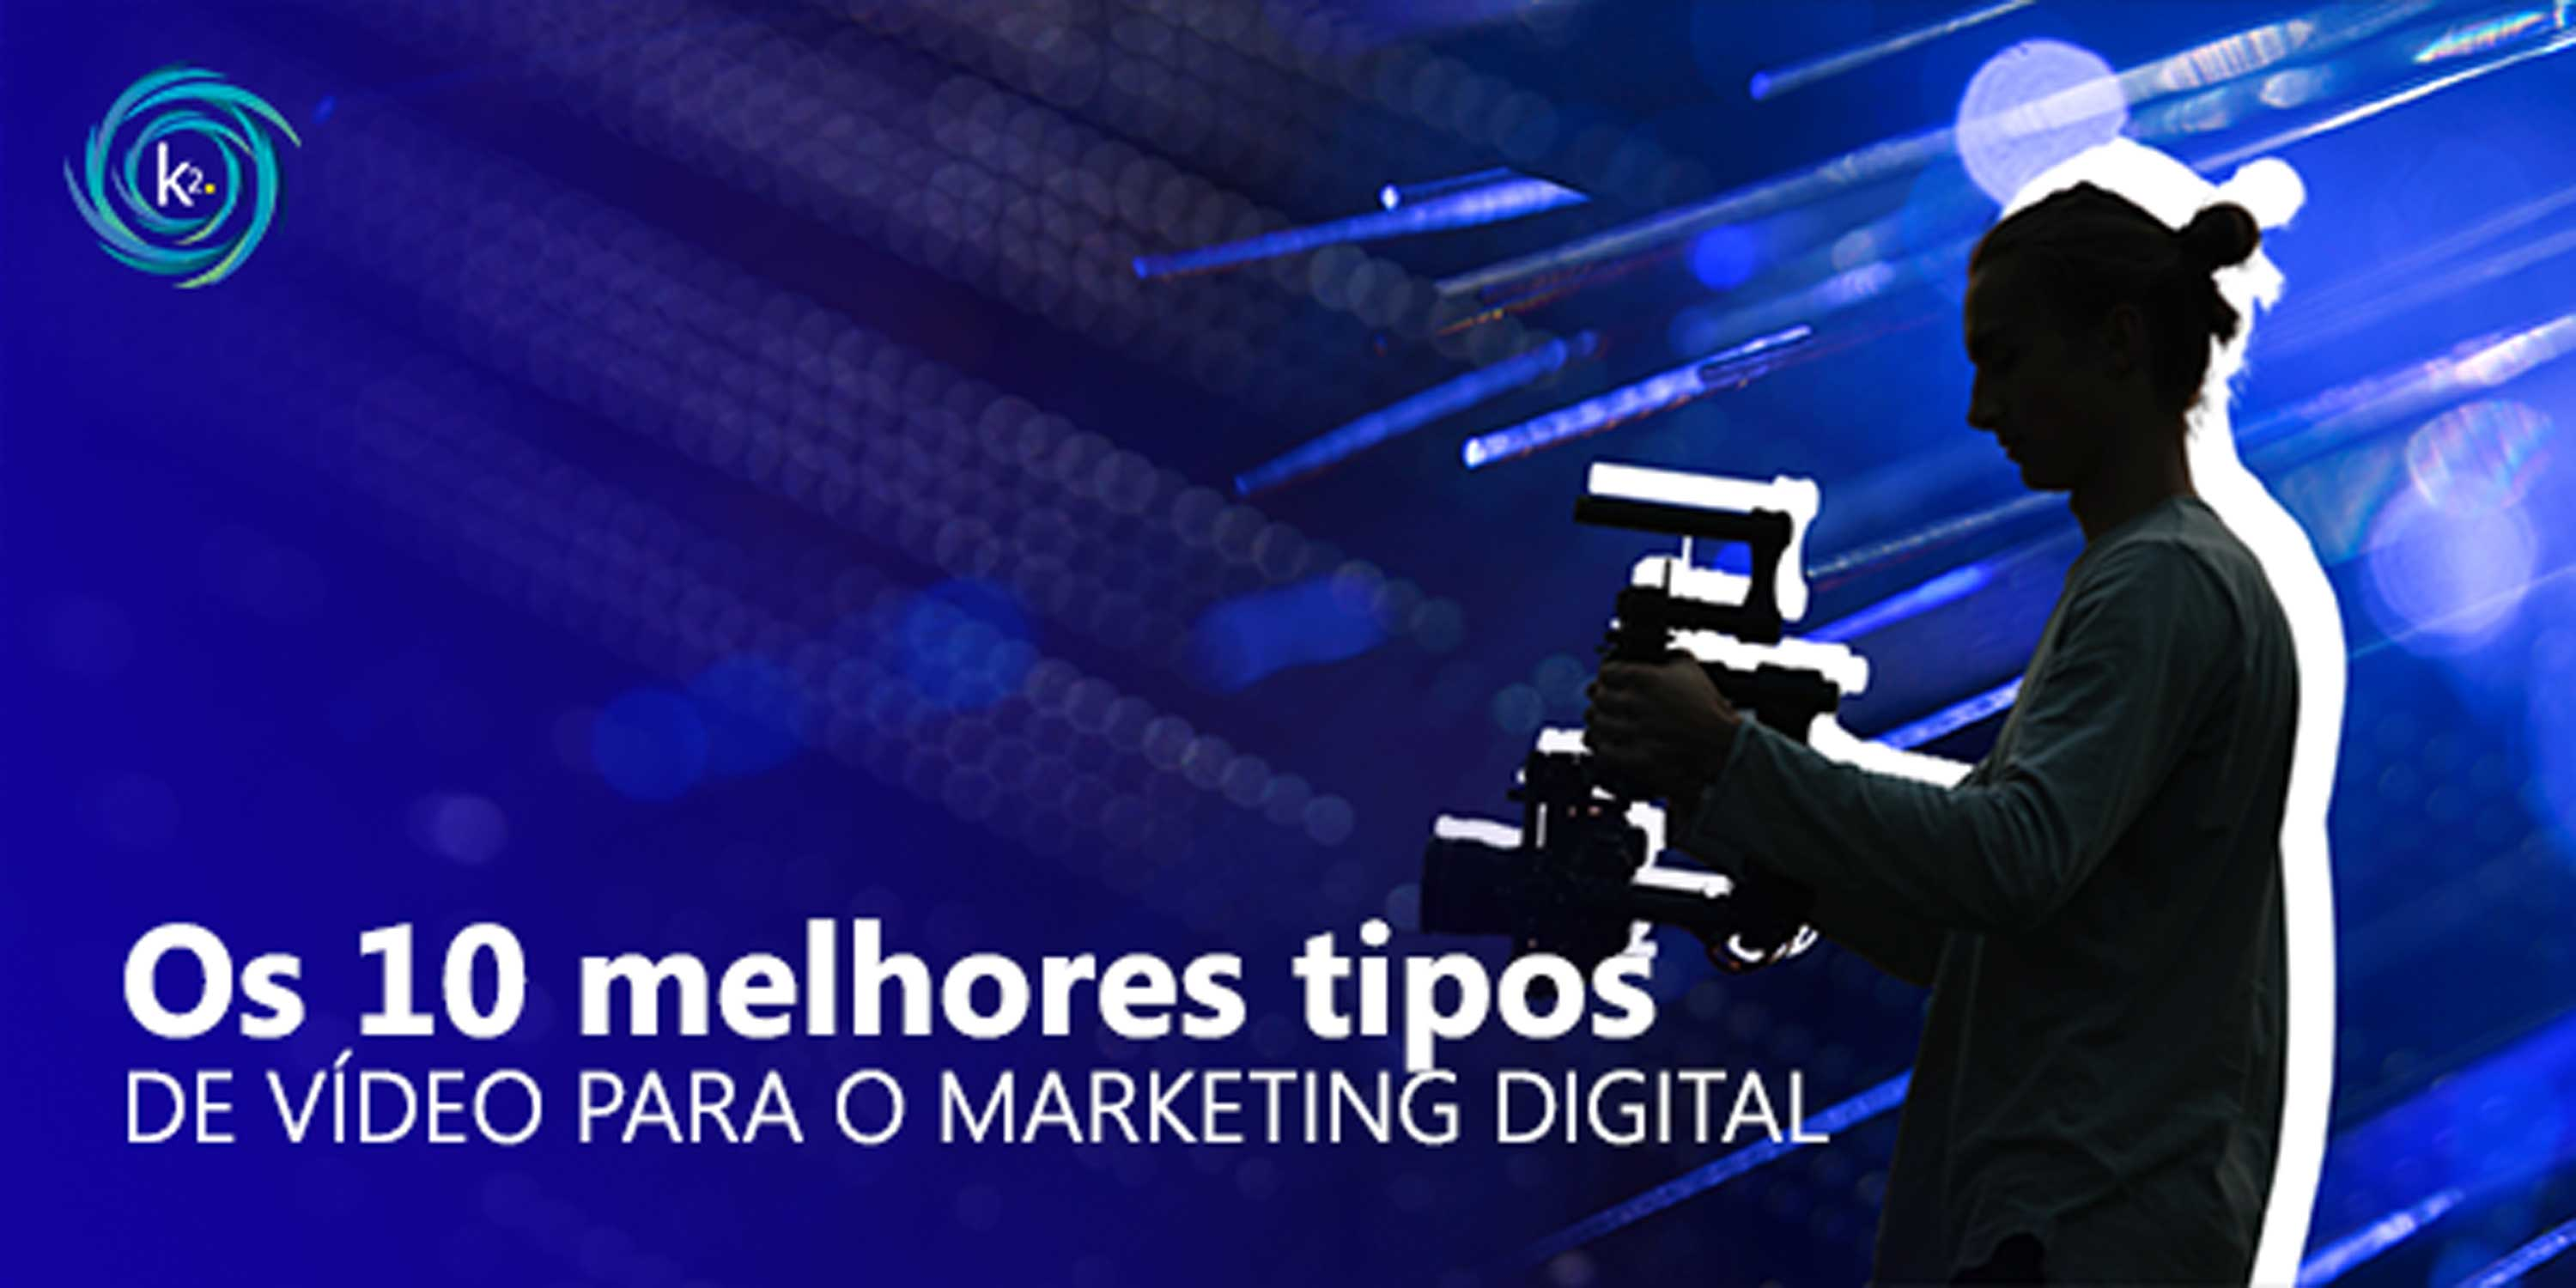 tipos de vídeo para o marketing digital